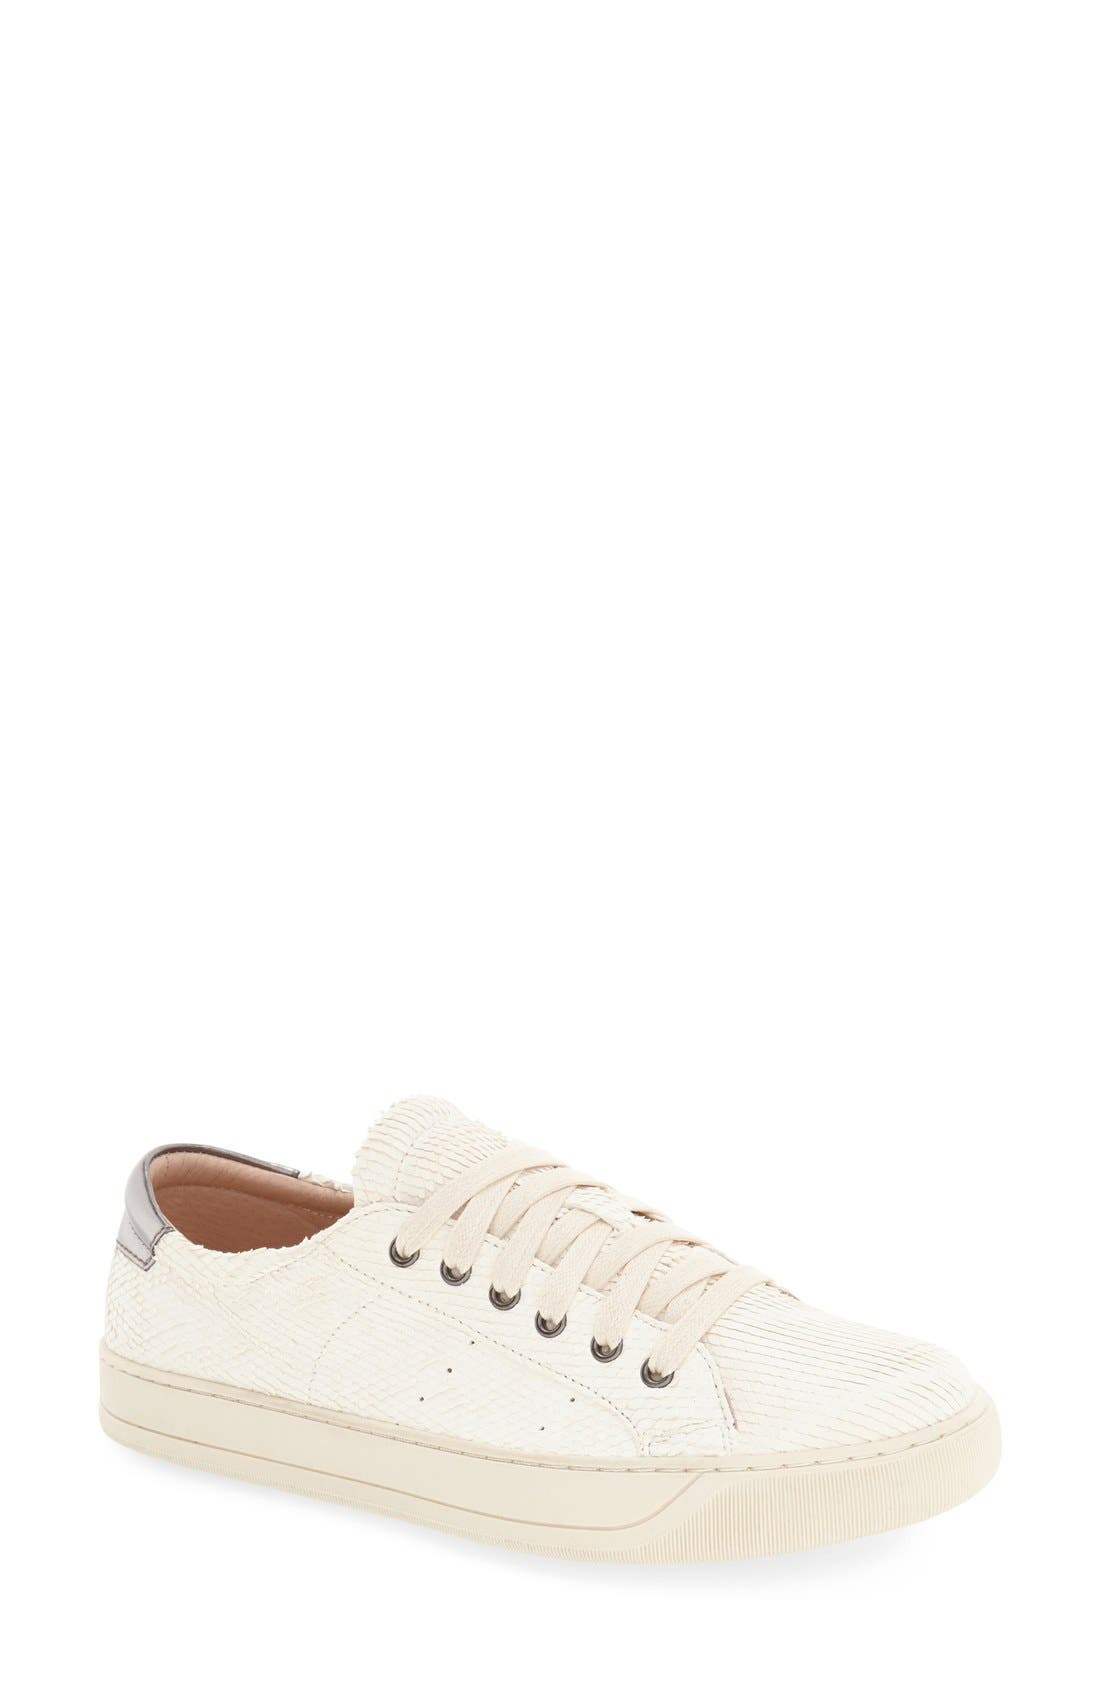 'Emerson' Sneaker,                         Main,                         color, Off White Snake Print Leather